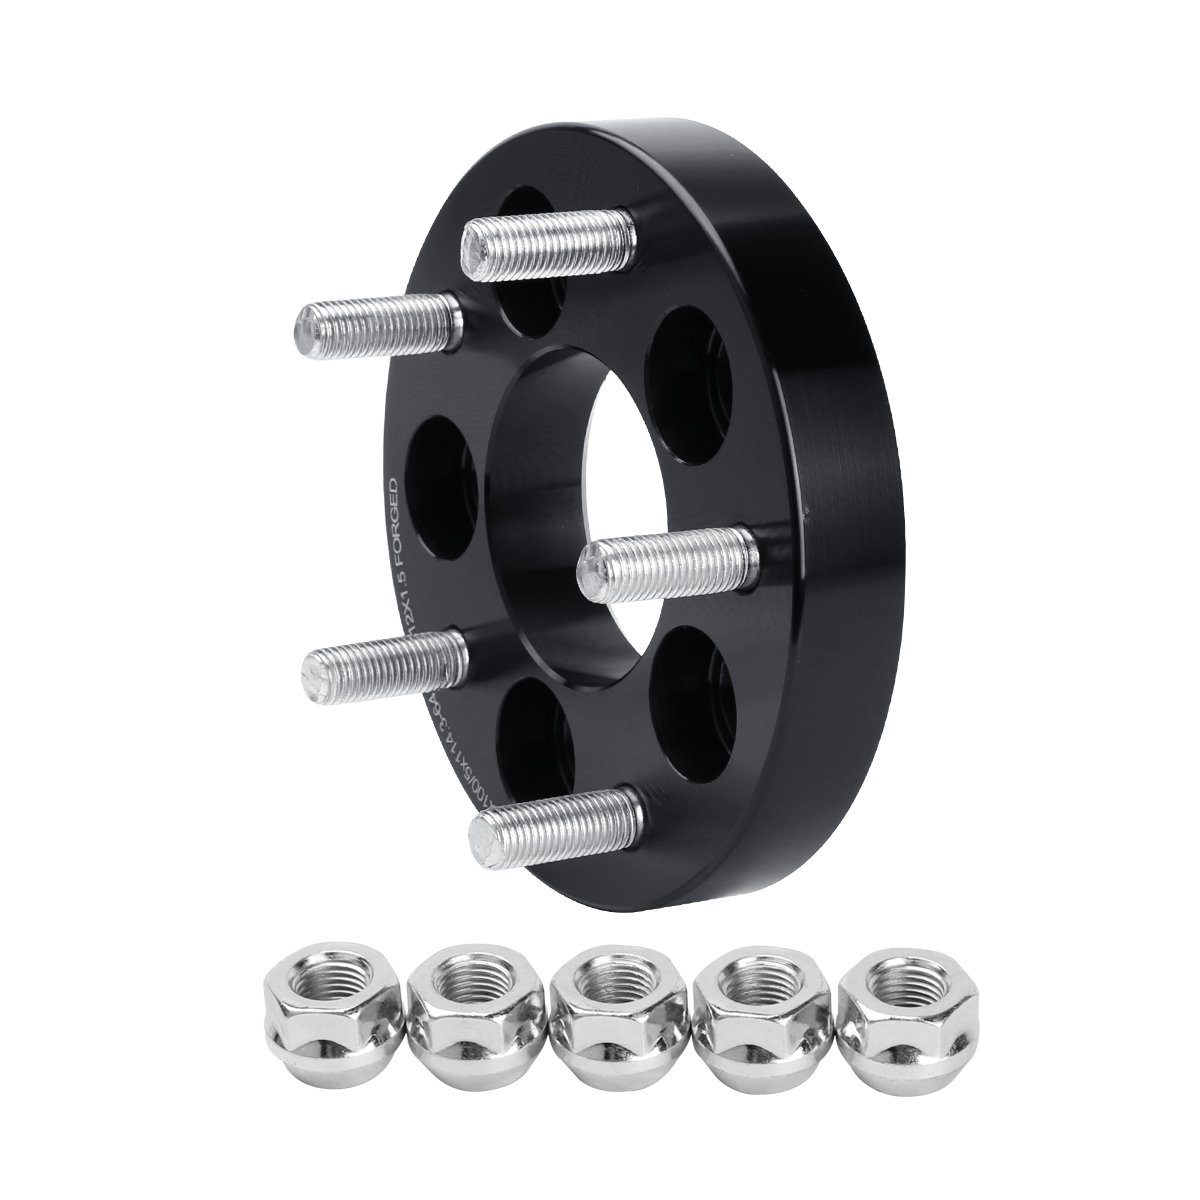 Dynofit 5x100 to 5x114.3 Wheel Adapters for Honda Toyota Wheels on Chrysler Pontiac Bolts Pattern Changed Adapter Dynofit 5x100mm to 5x4.5 1 Forged Conversion Wheel Spacers 12x1.5 Thread Pitch